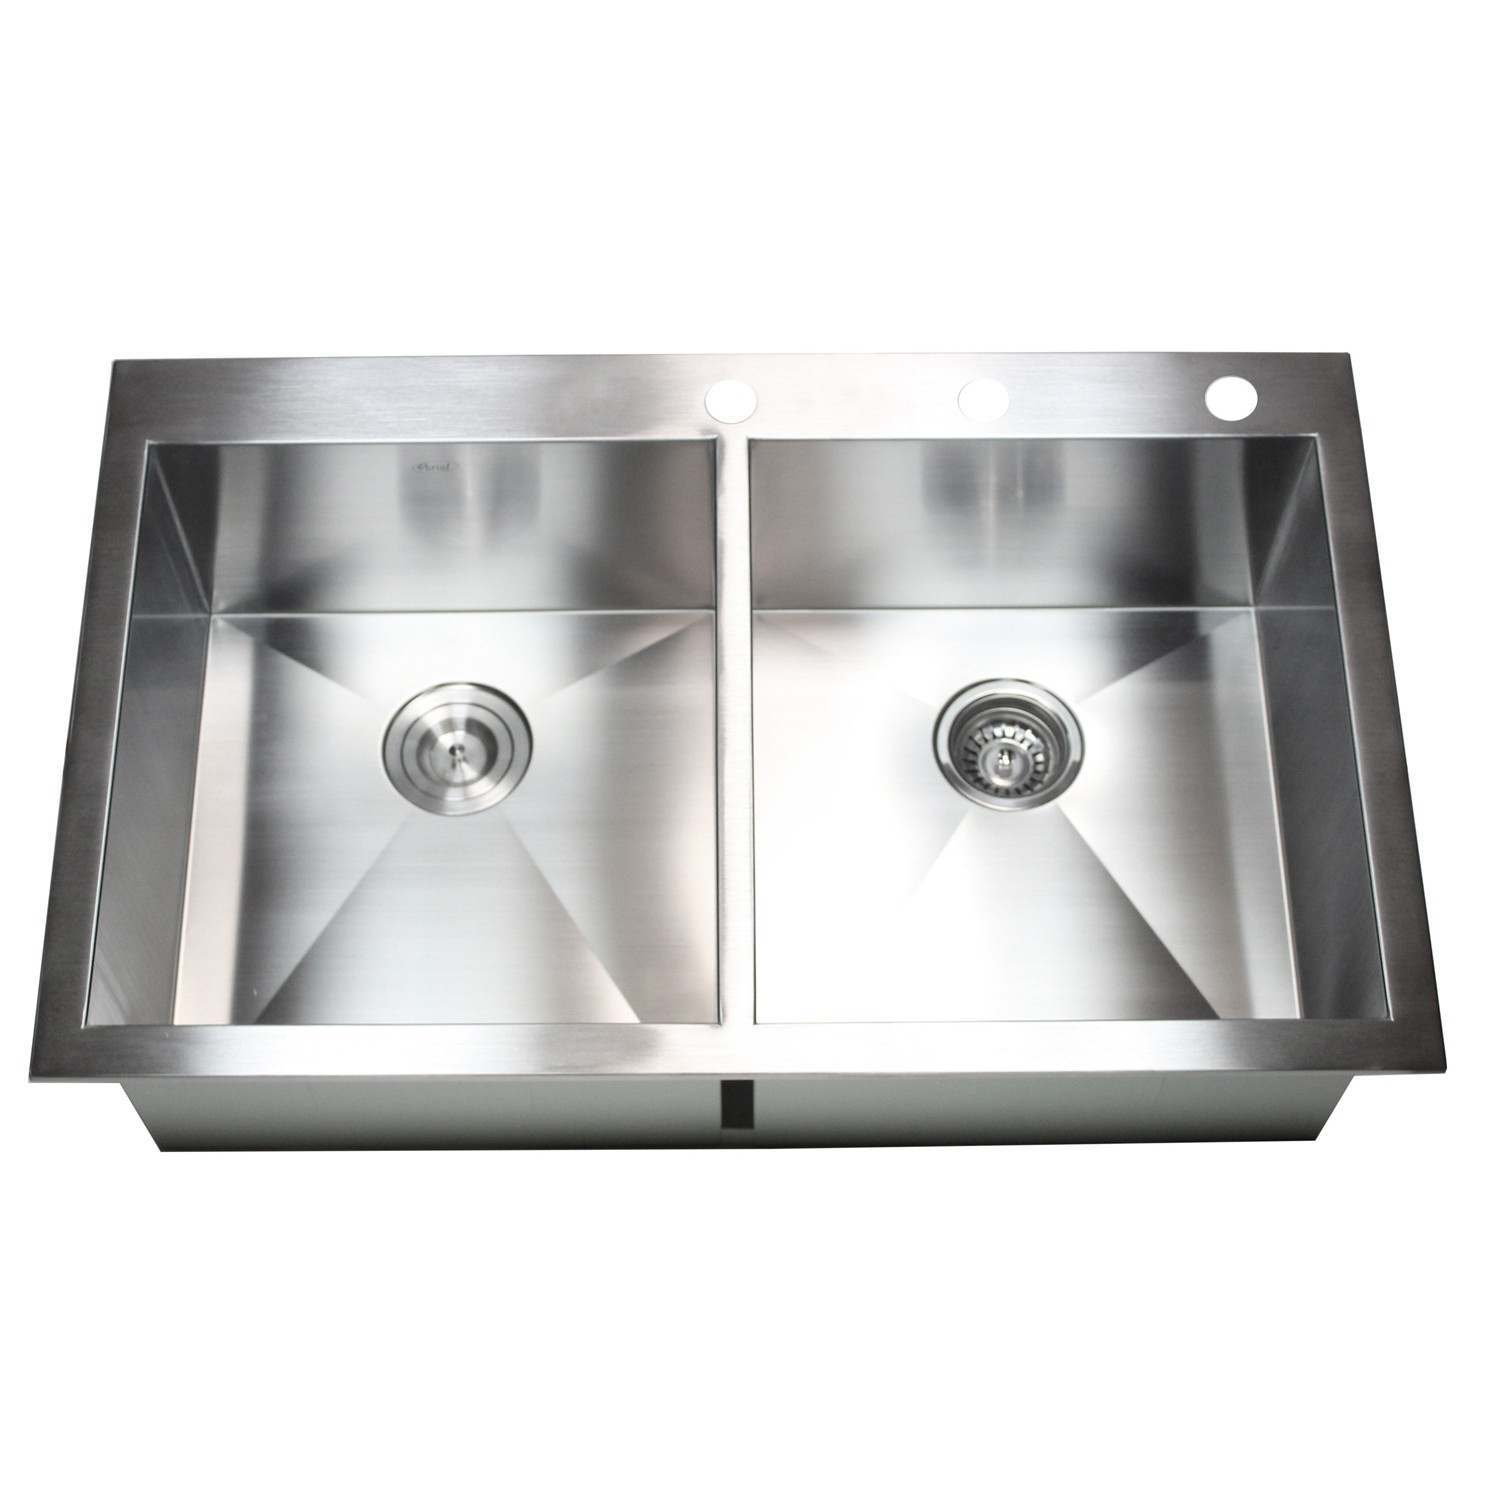 Stainless Steel Double Sink 36 Inch Top Mount Drop In Stainless Steel Double Bowl